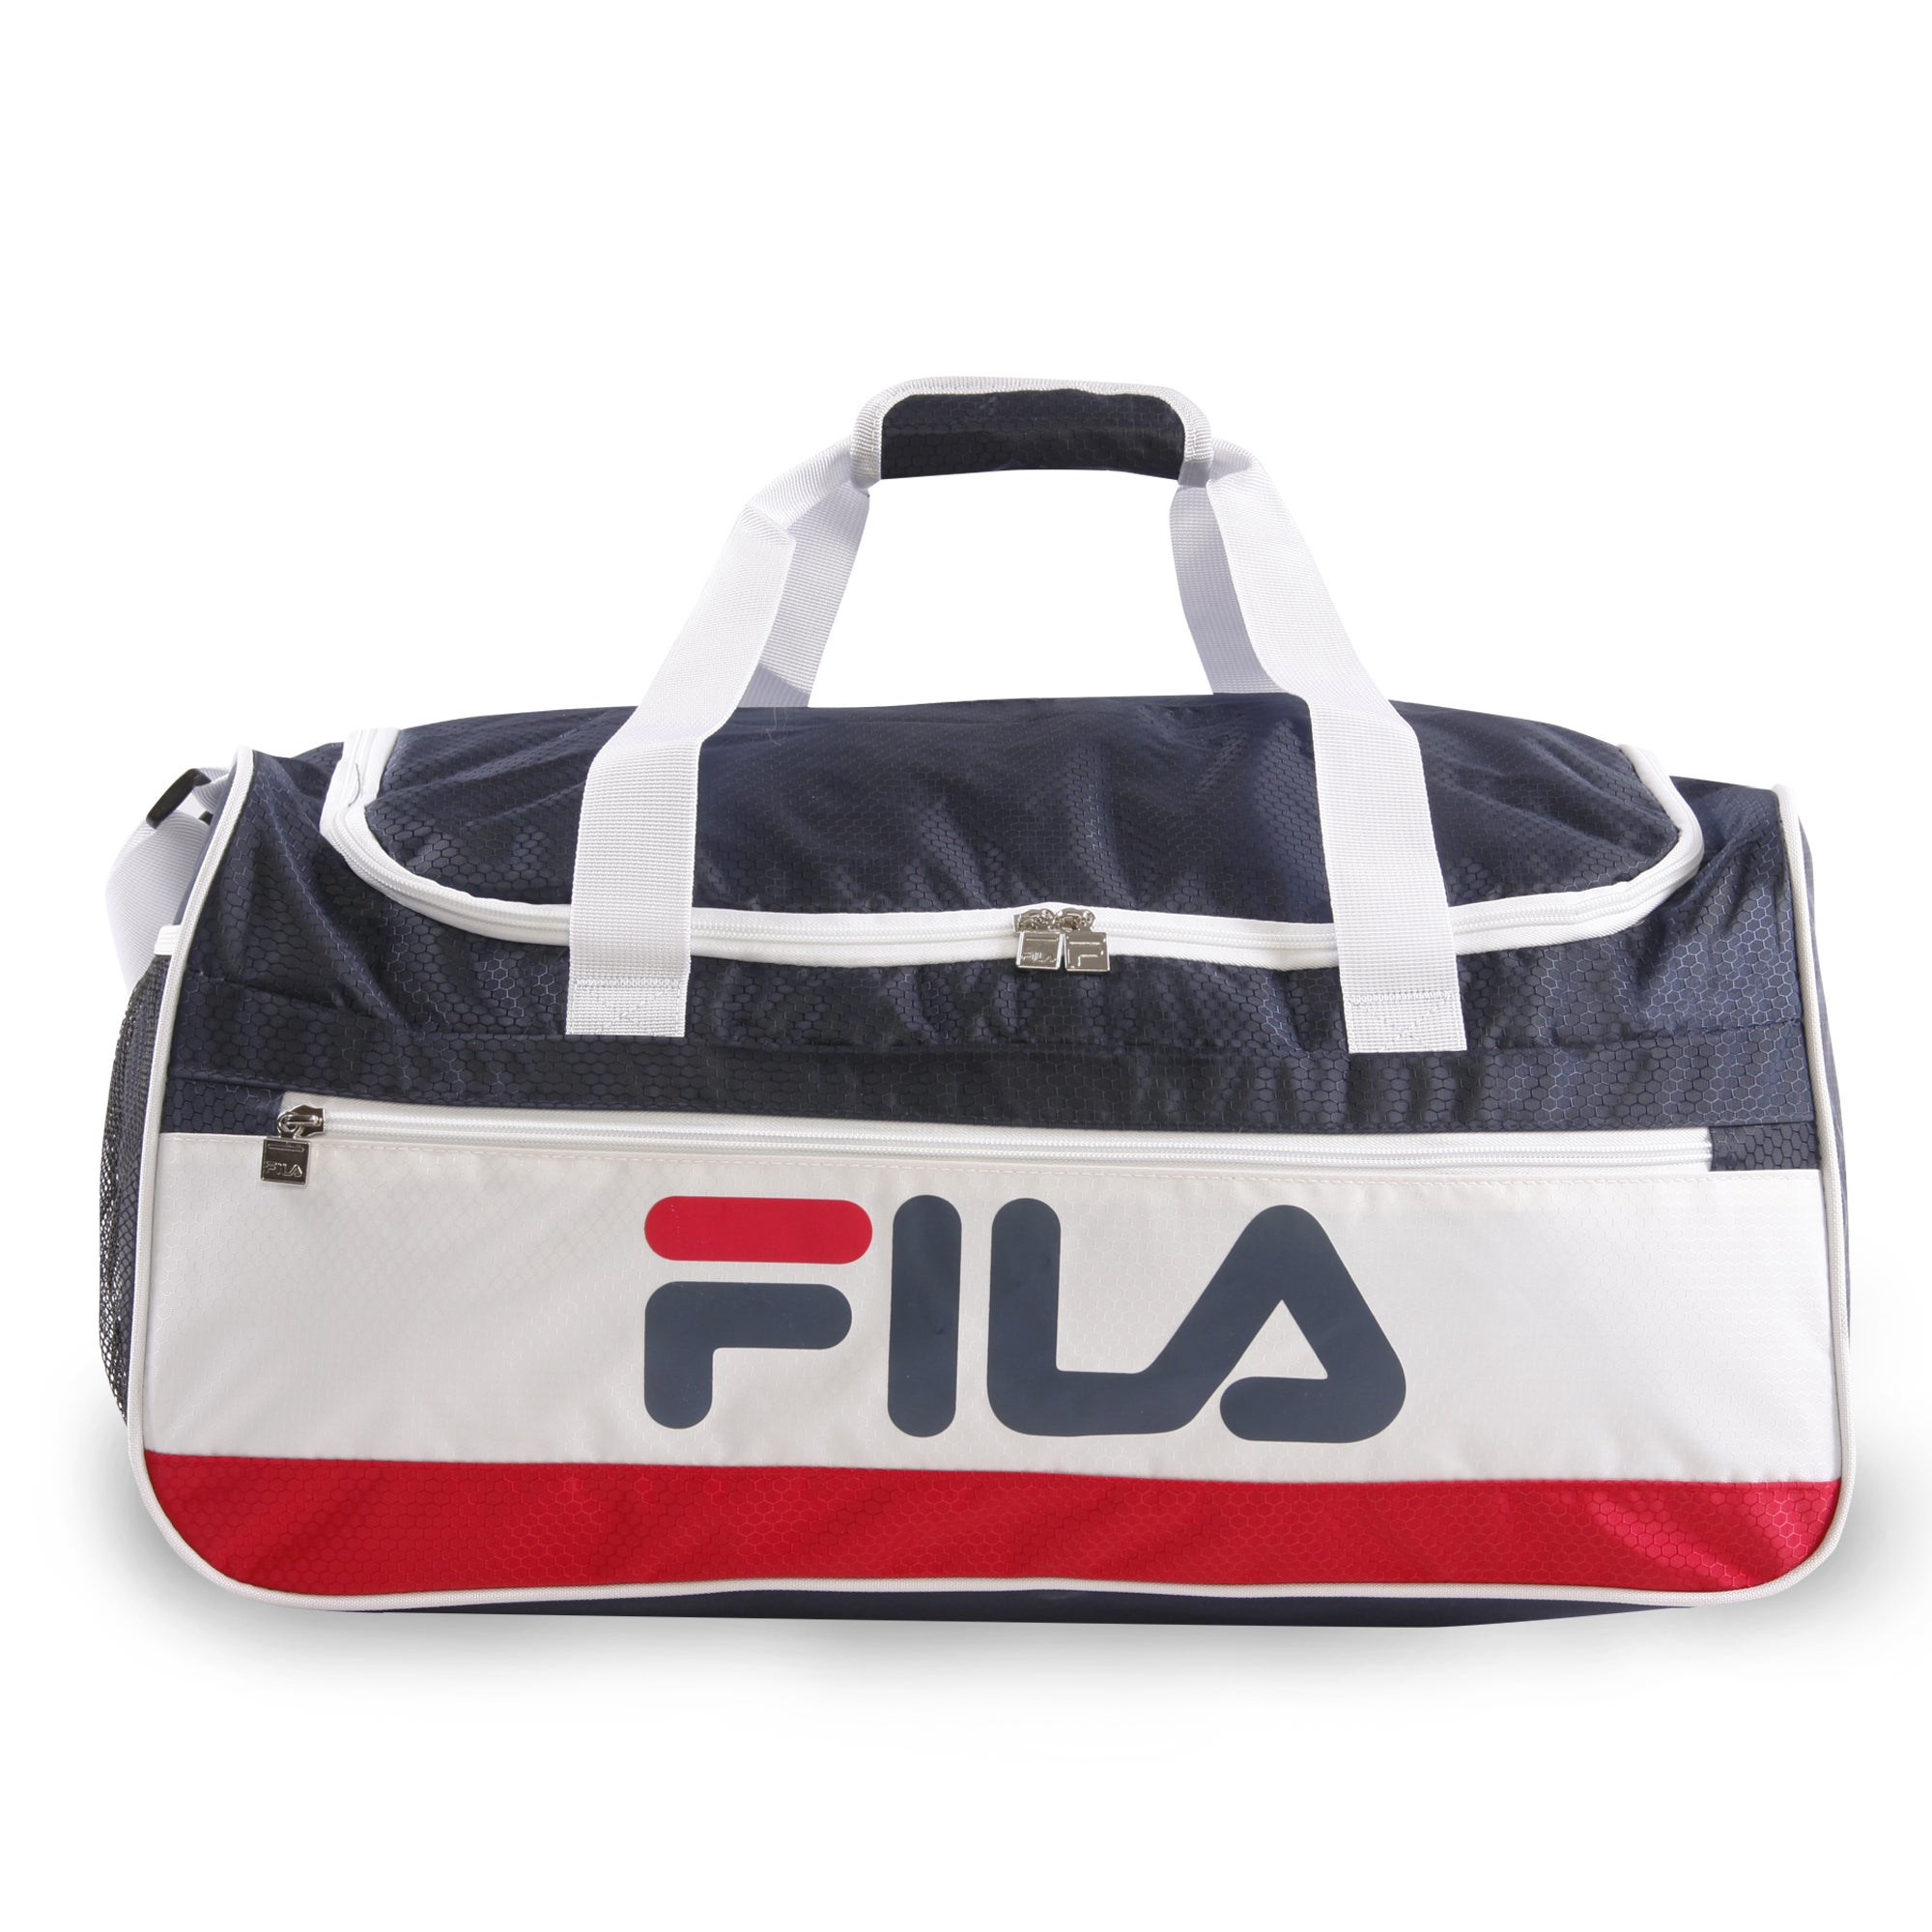 fila acer duffel bag Sale 98dd1df003875